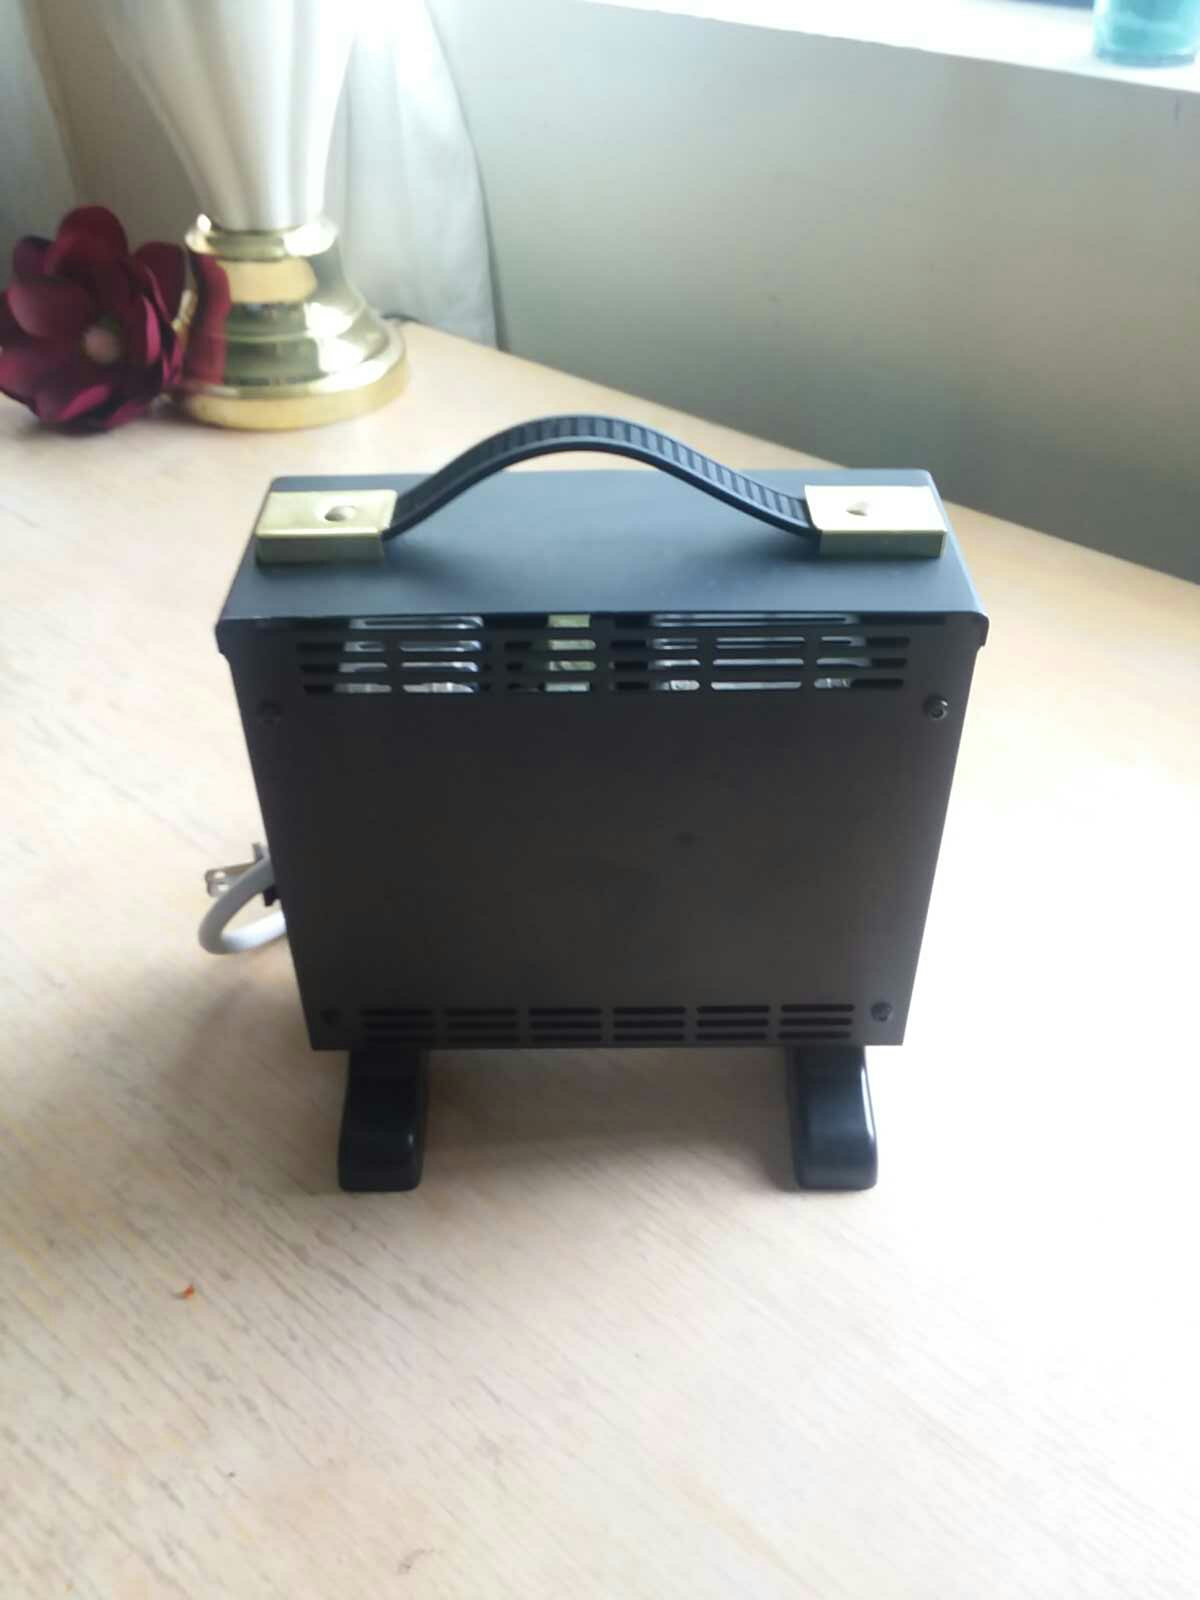 24 volt charger. GREAT FOR SCOOTERS.